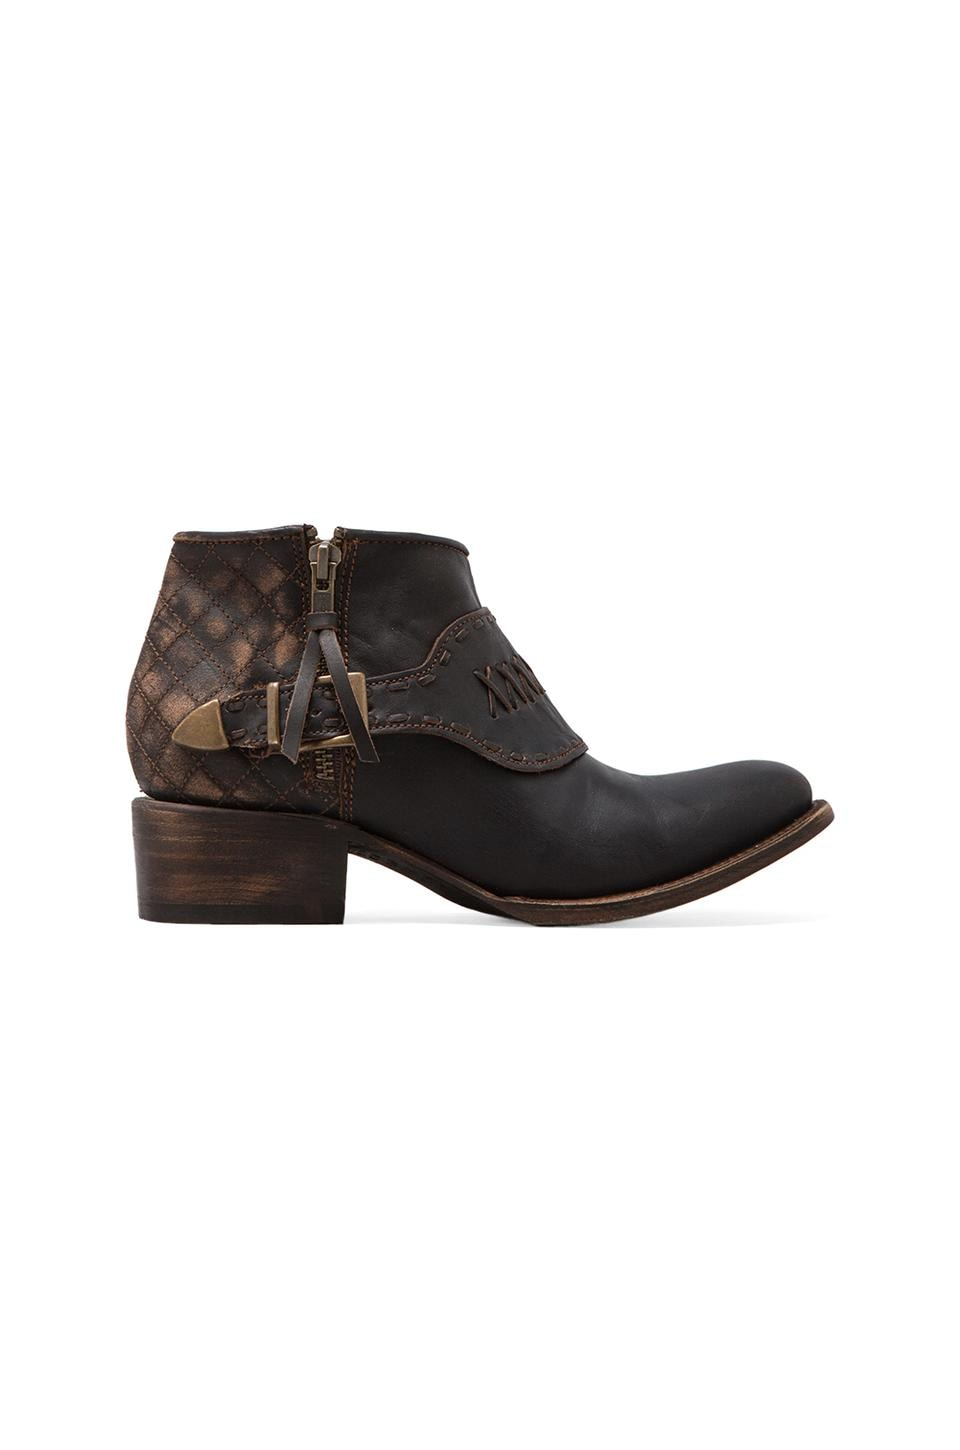 Steven Grand Boot in Black